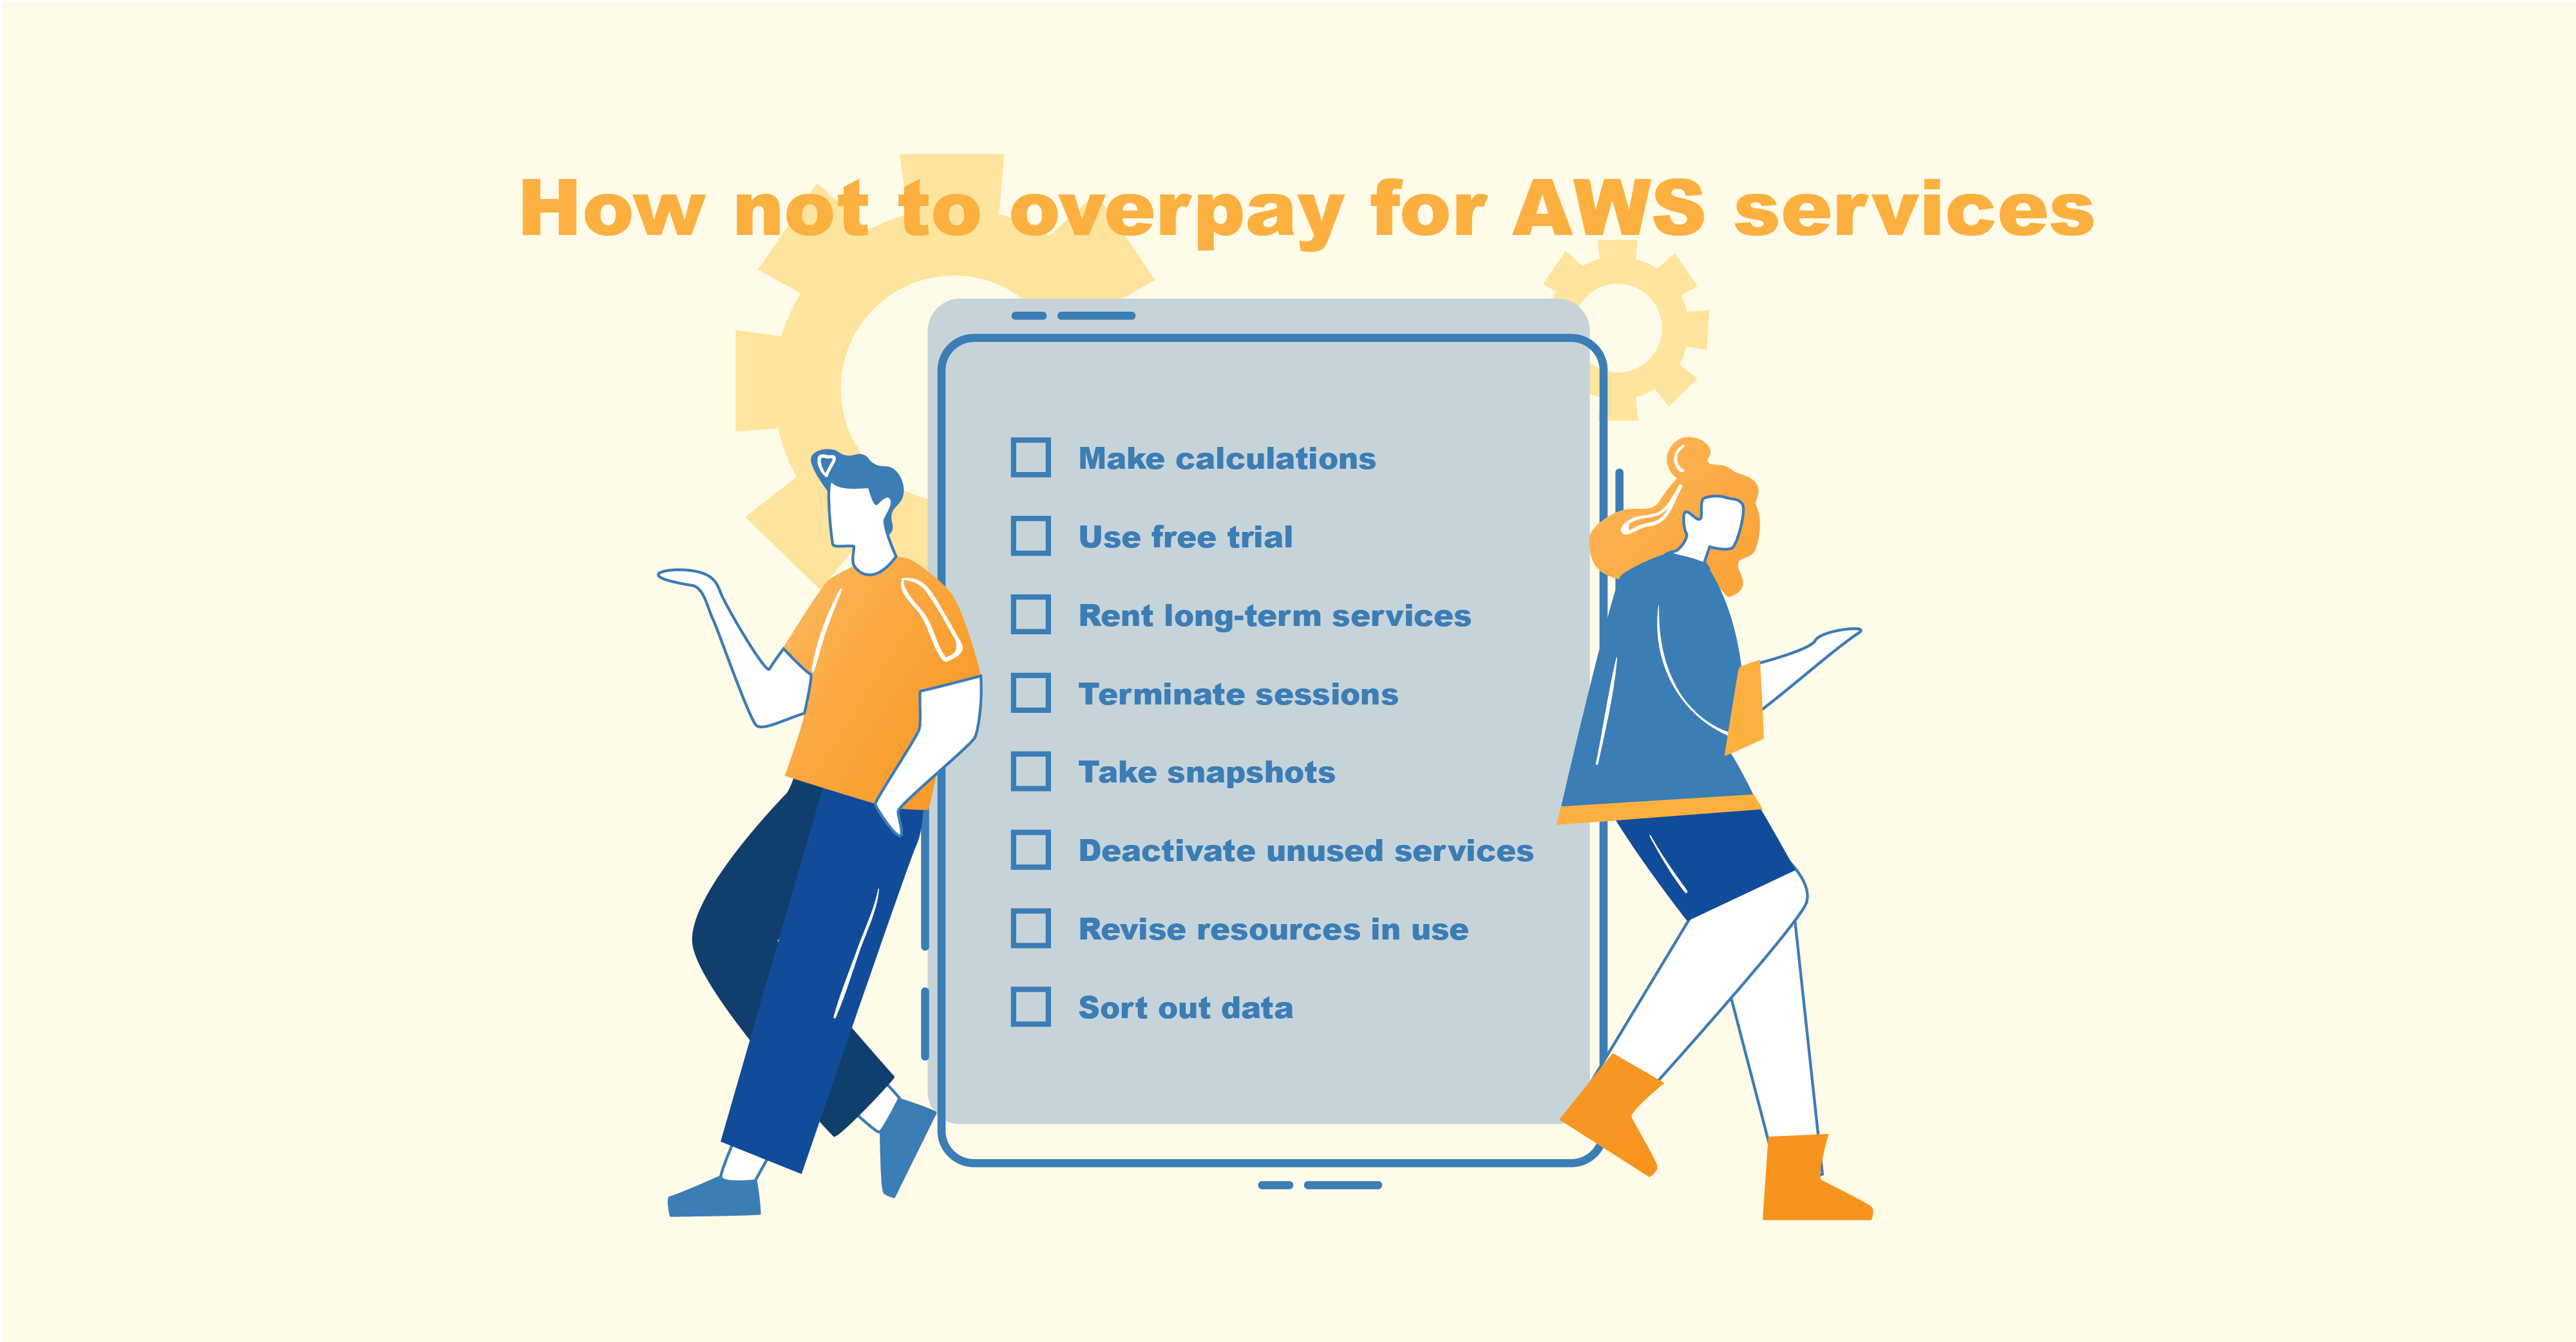 Tips on how not to overpay for AWS